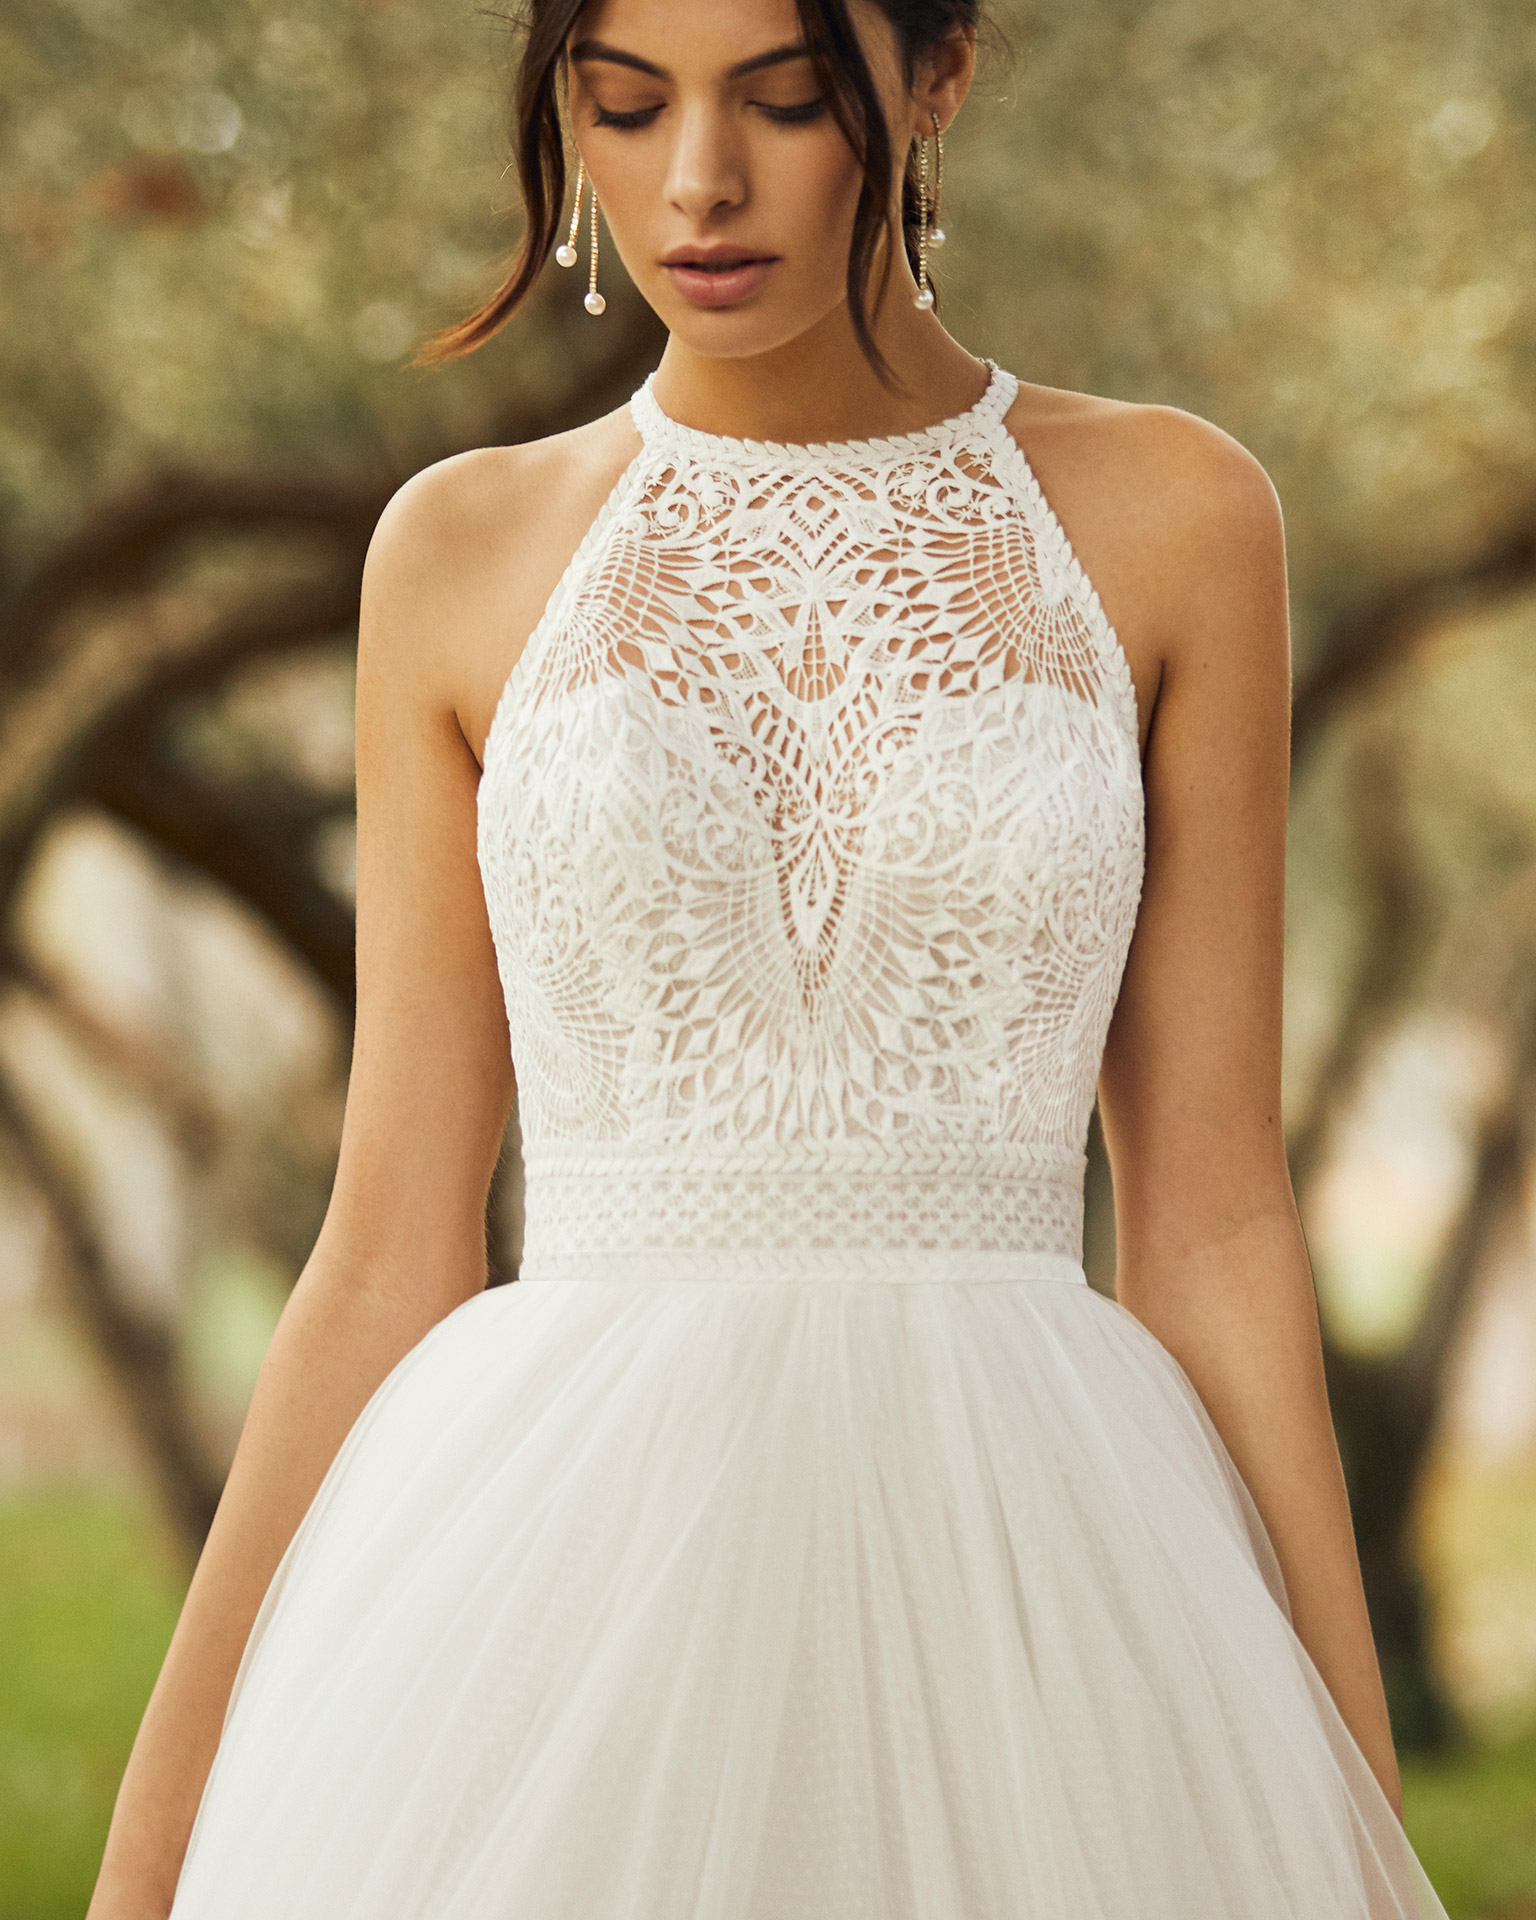 Romantic tulle and lace wedding dress with low back with straps. 2020 ALMANOVIA Collection.